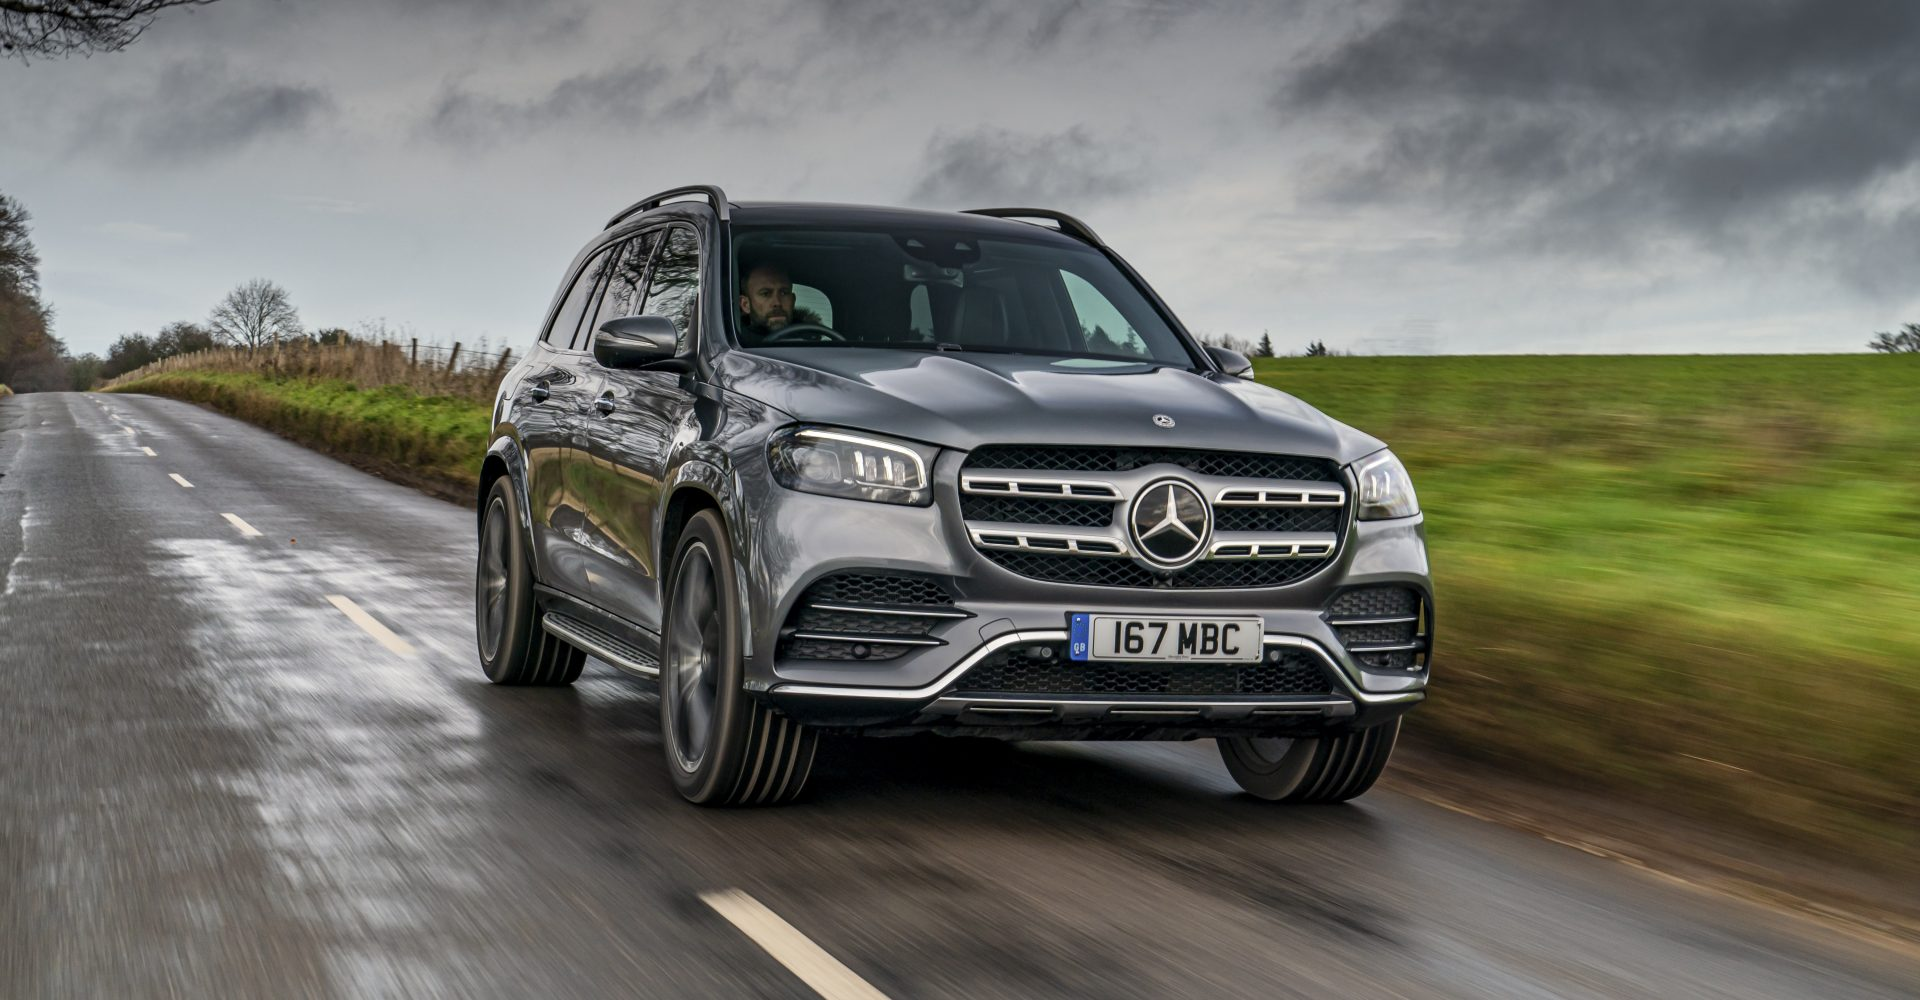 First Drive: The Mercedes-Benz GLS is a giant of the SUV segment